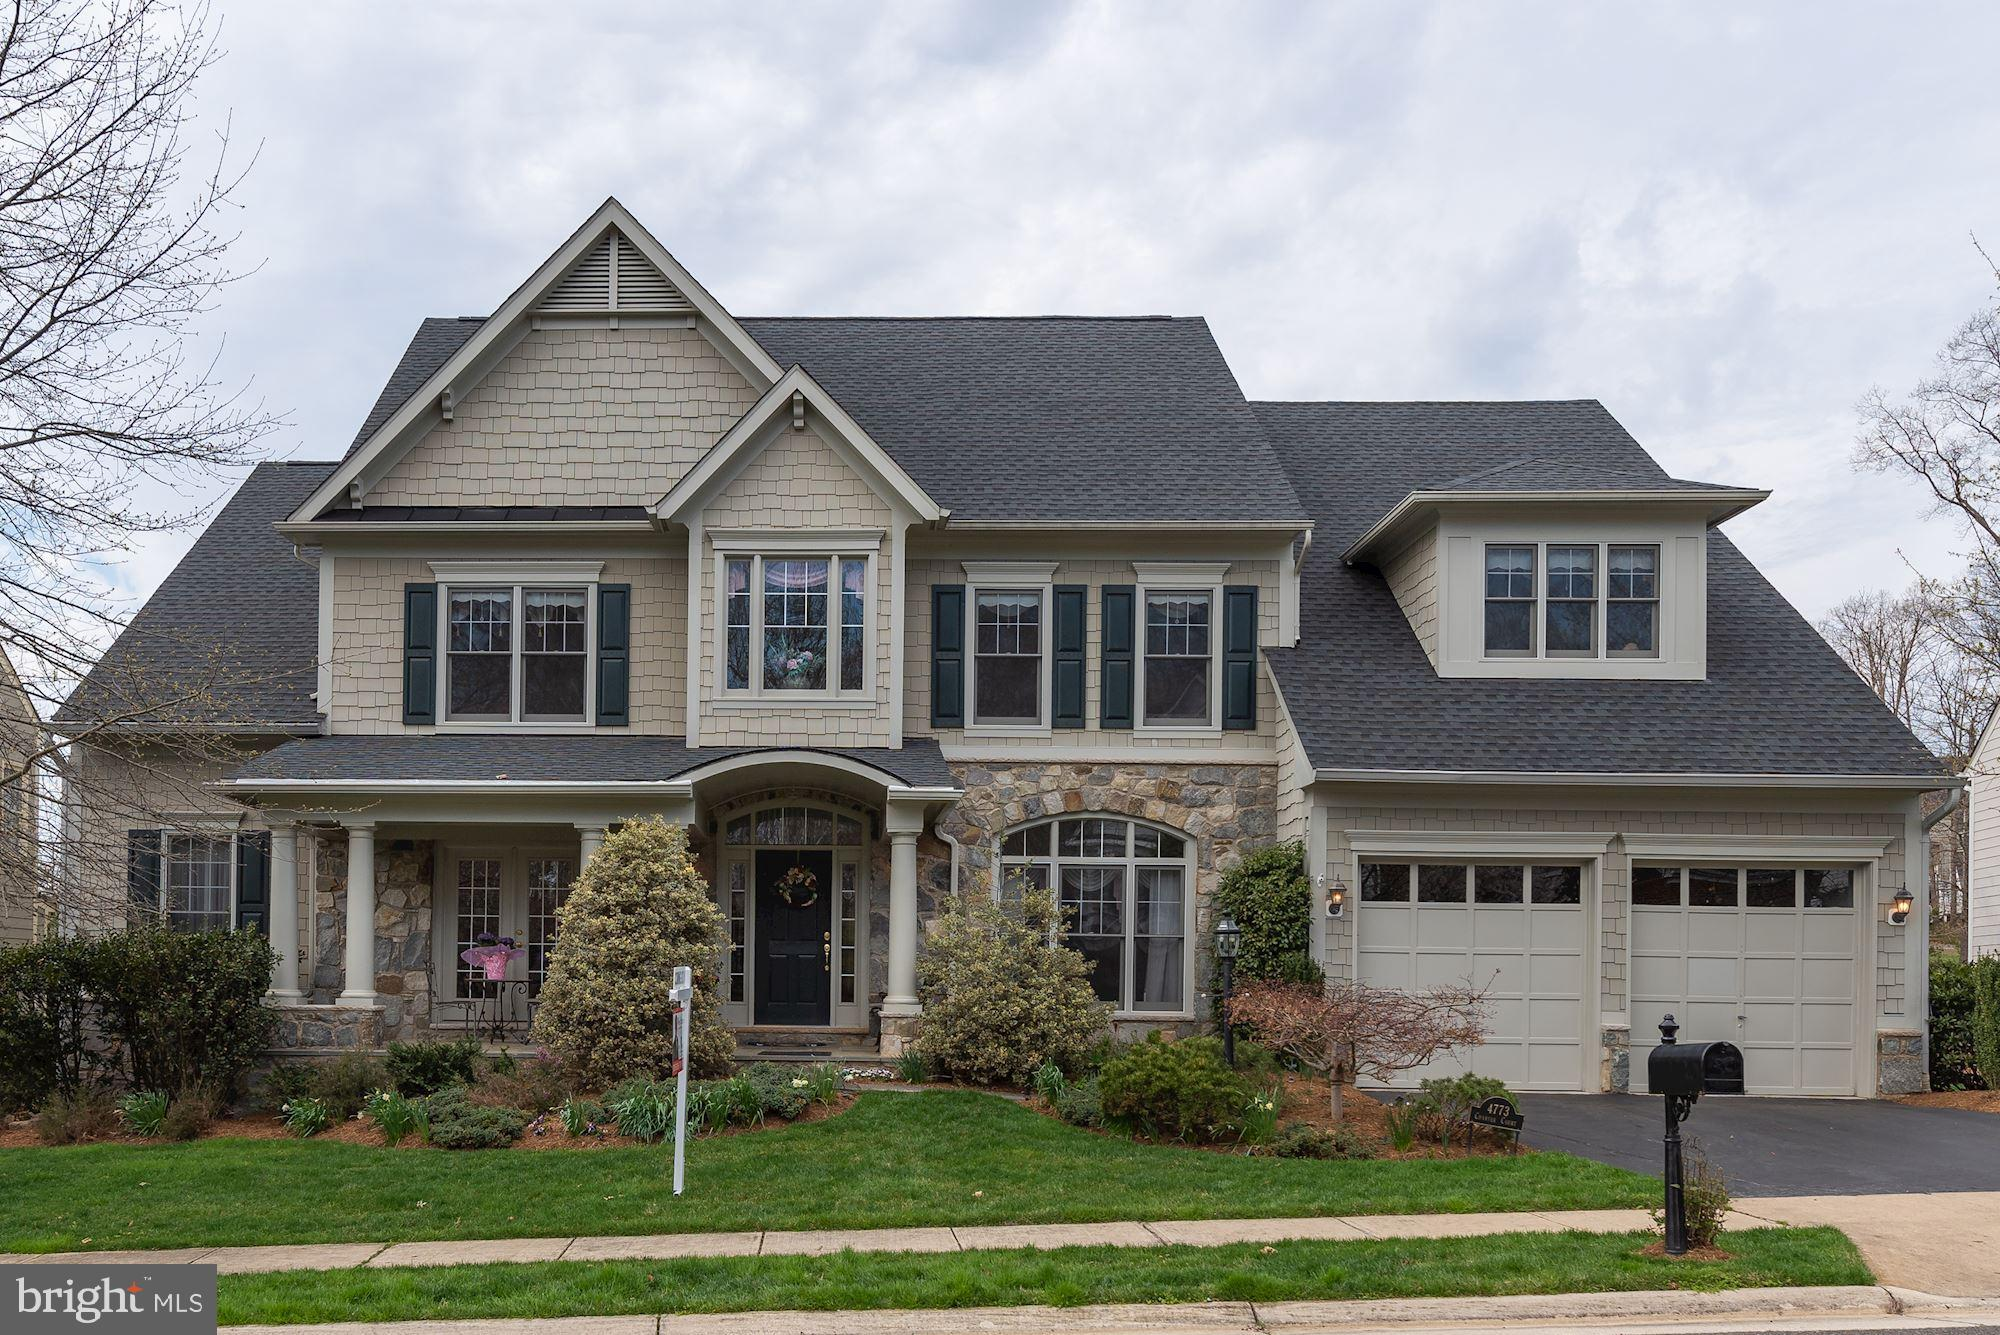 ONLY ONE OF 3 CRAFTMARK HOMES WITH MASTER SUITE ON MAIN LEVEL WITH 5 BEDROOMS AND 5 1/2 BATHROOMS WITH LARGE DECK OVERLOOKING #15 HOLE OF OLD HICKORY GOLF COURSE IN RIVER FALLS**FINISH IN PLACE HARDWOODS, GREAT DECK, SPACIOUS BEDROOMS, GOURMET KITCHEN WITH STAINLESS APPLIANCES - A MUST SEE!